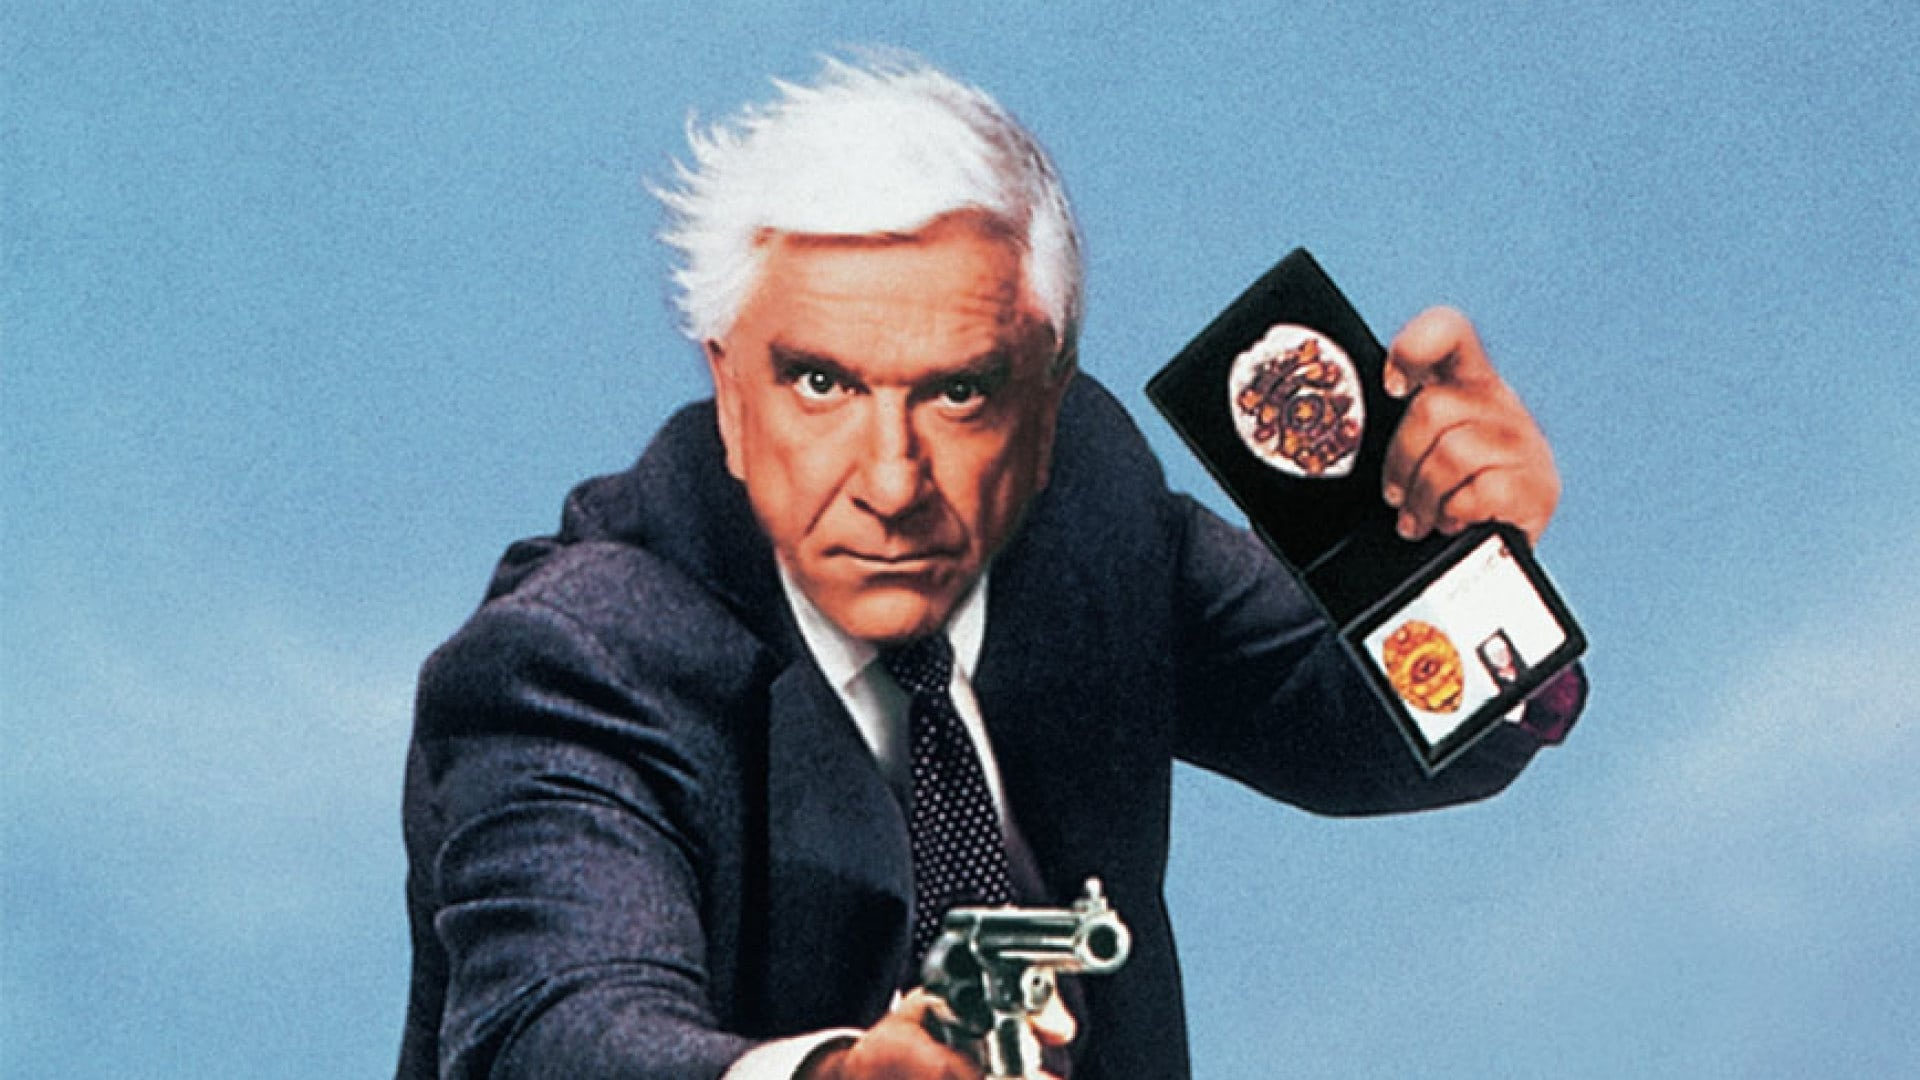 The Naked Gun: From the Files of Police Squad! 4/10) Movie